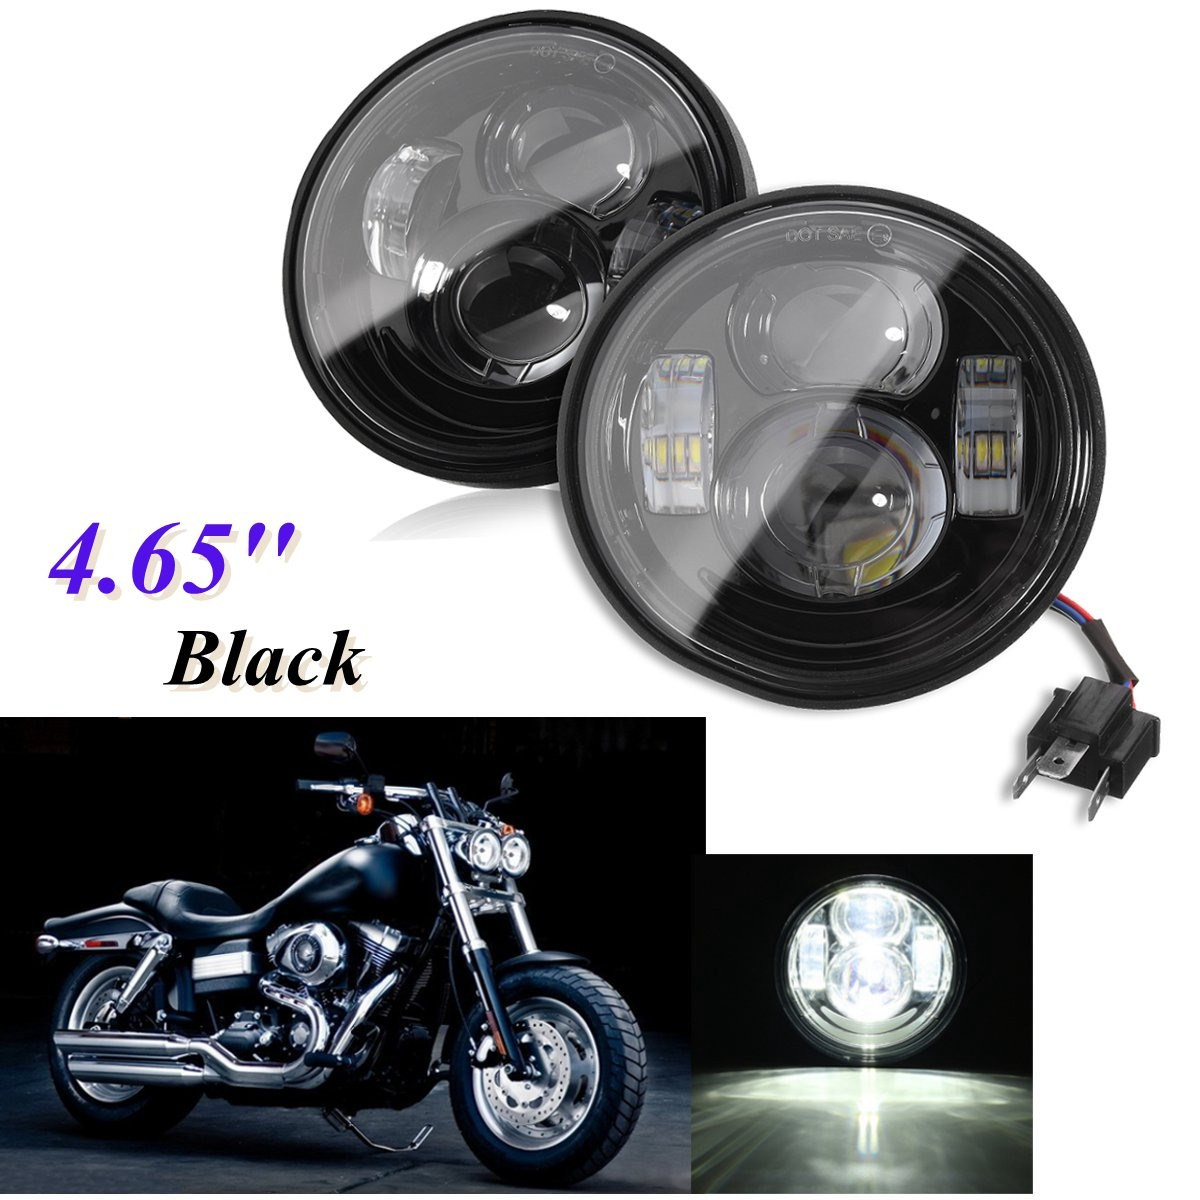 1 Pair 12V Motorcycle 4.65'' Round LED Headlight For Harley ... Fa Headlight Flasher Wiring Diagram on